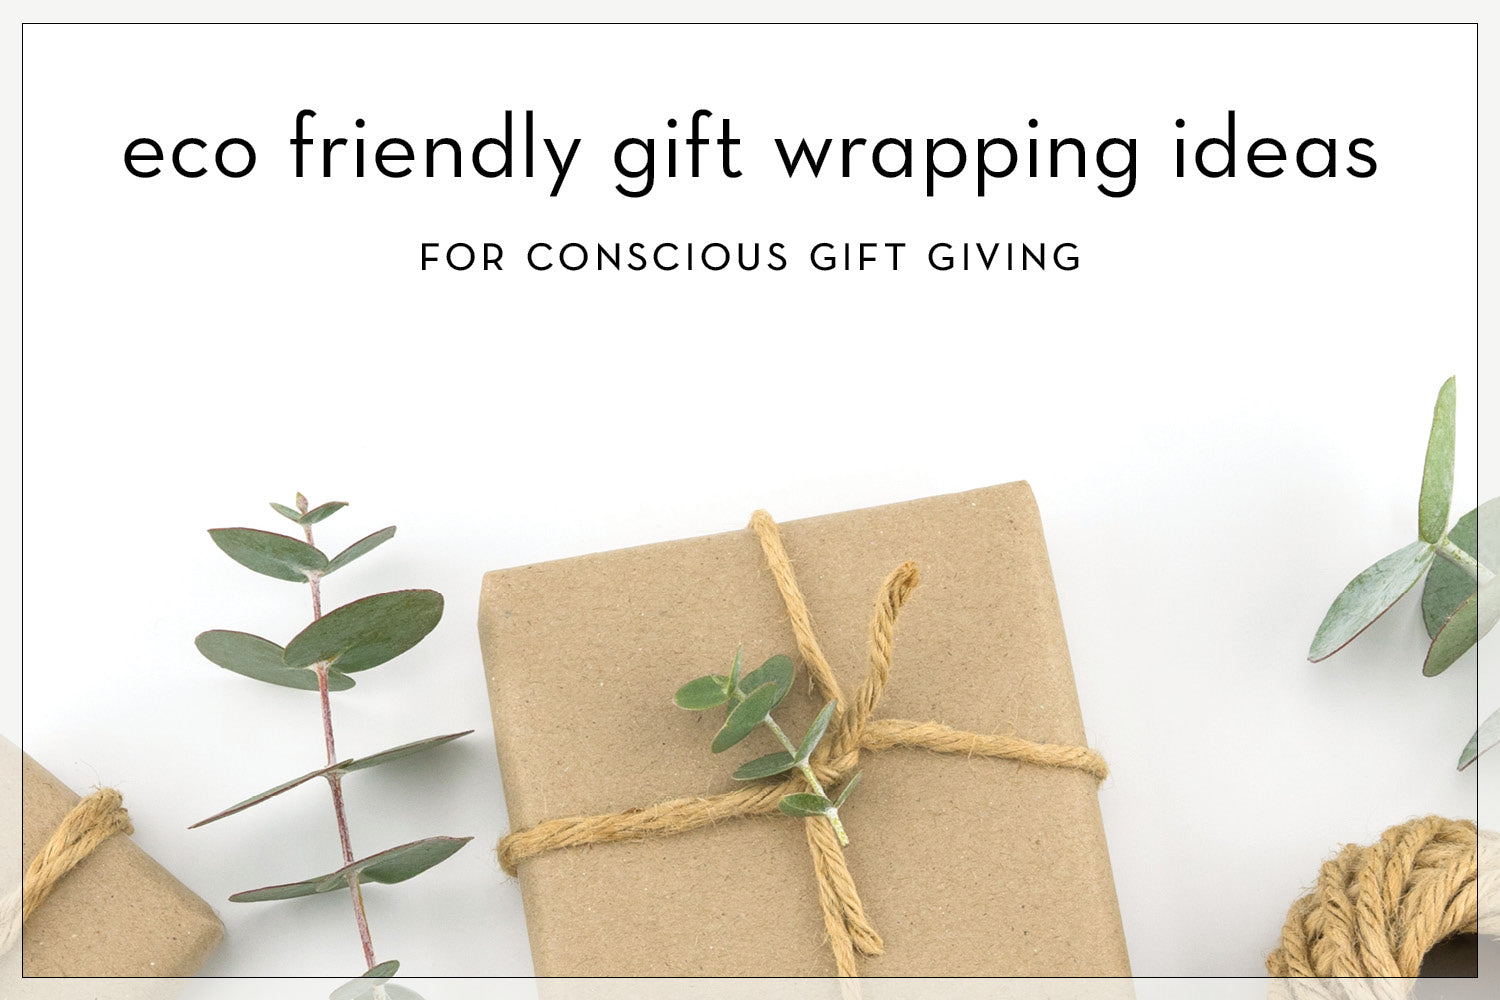 eco friendly gift wrapping ideas for conscious gift giving